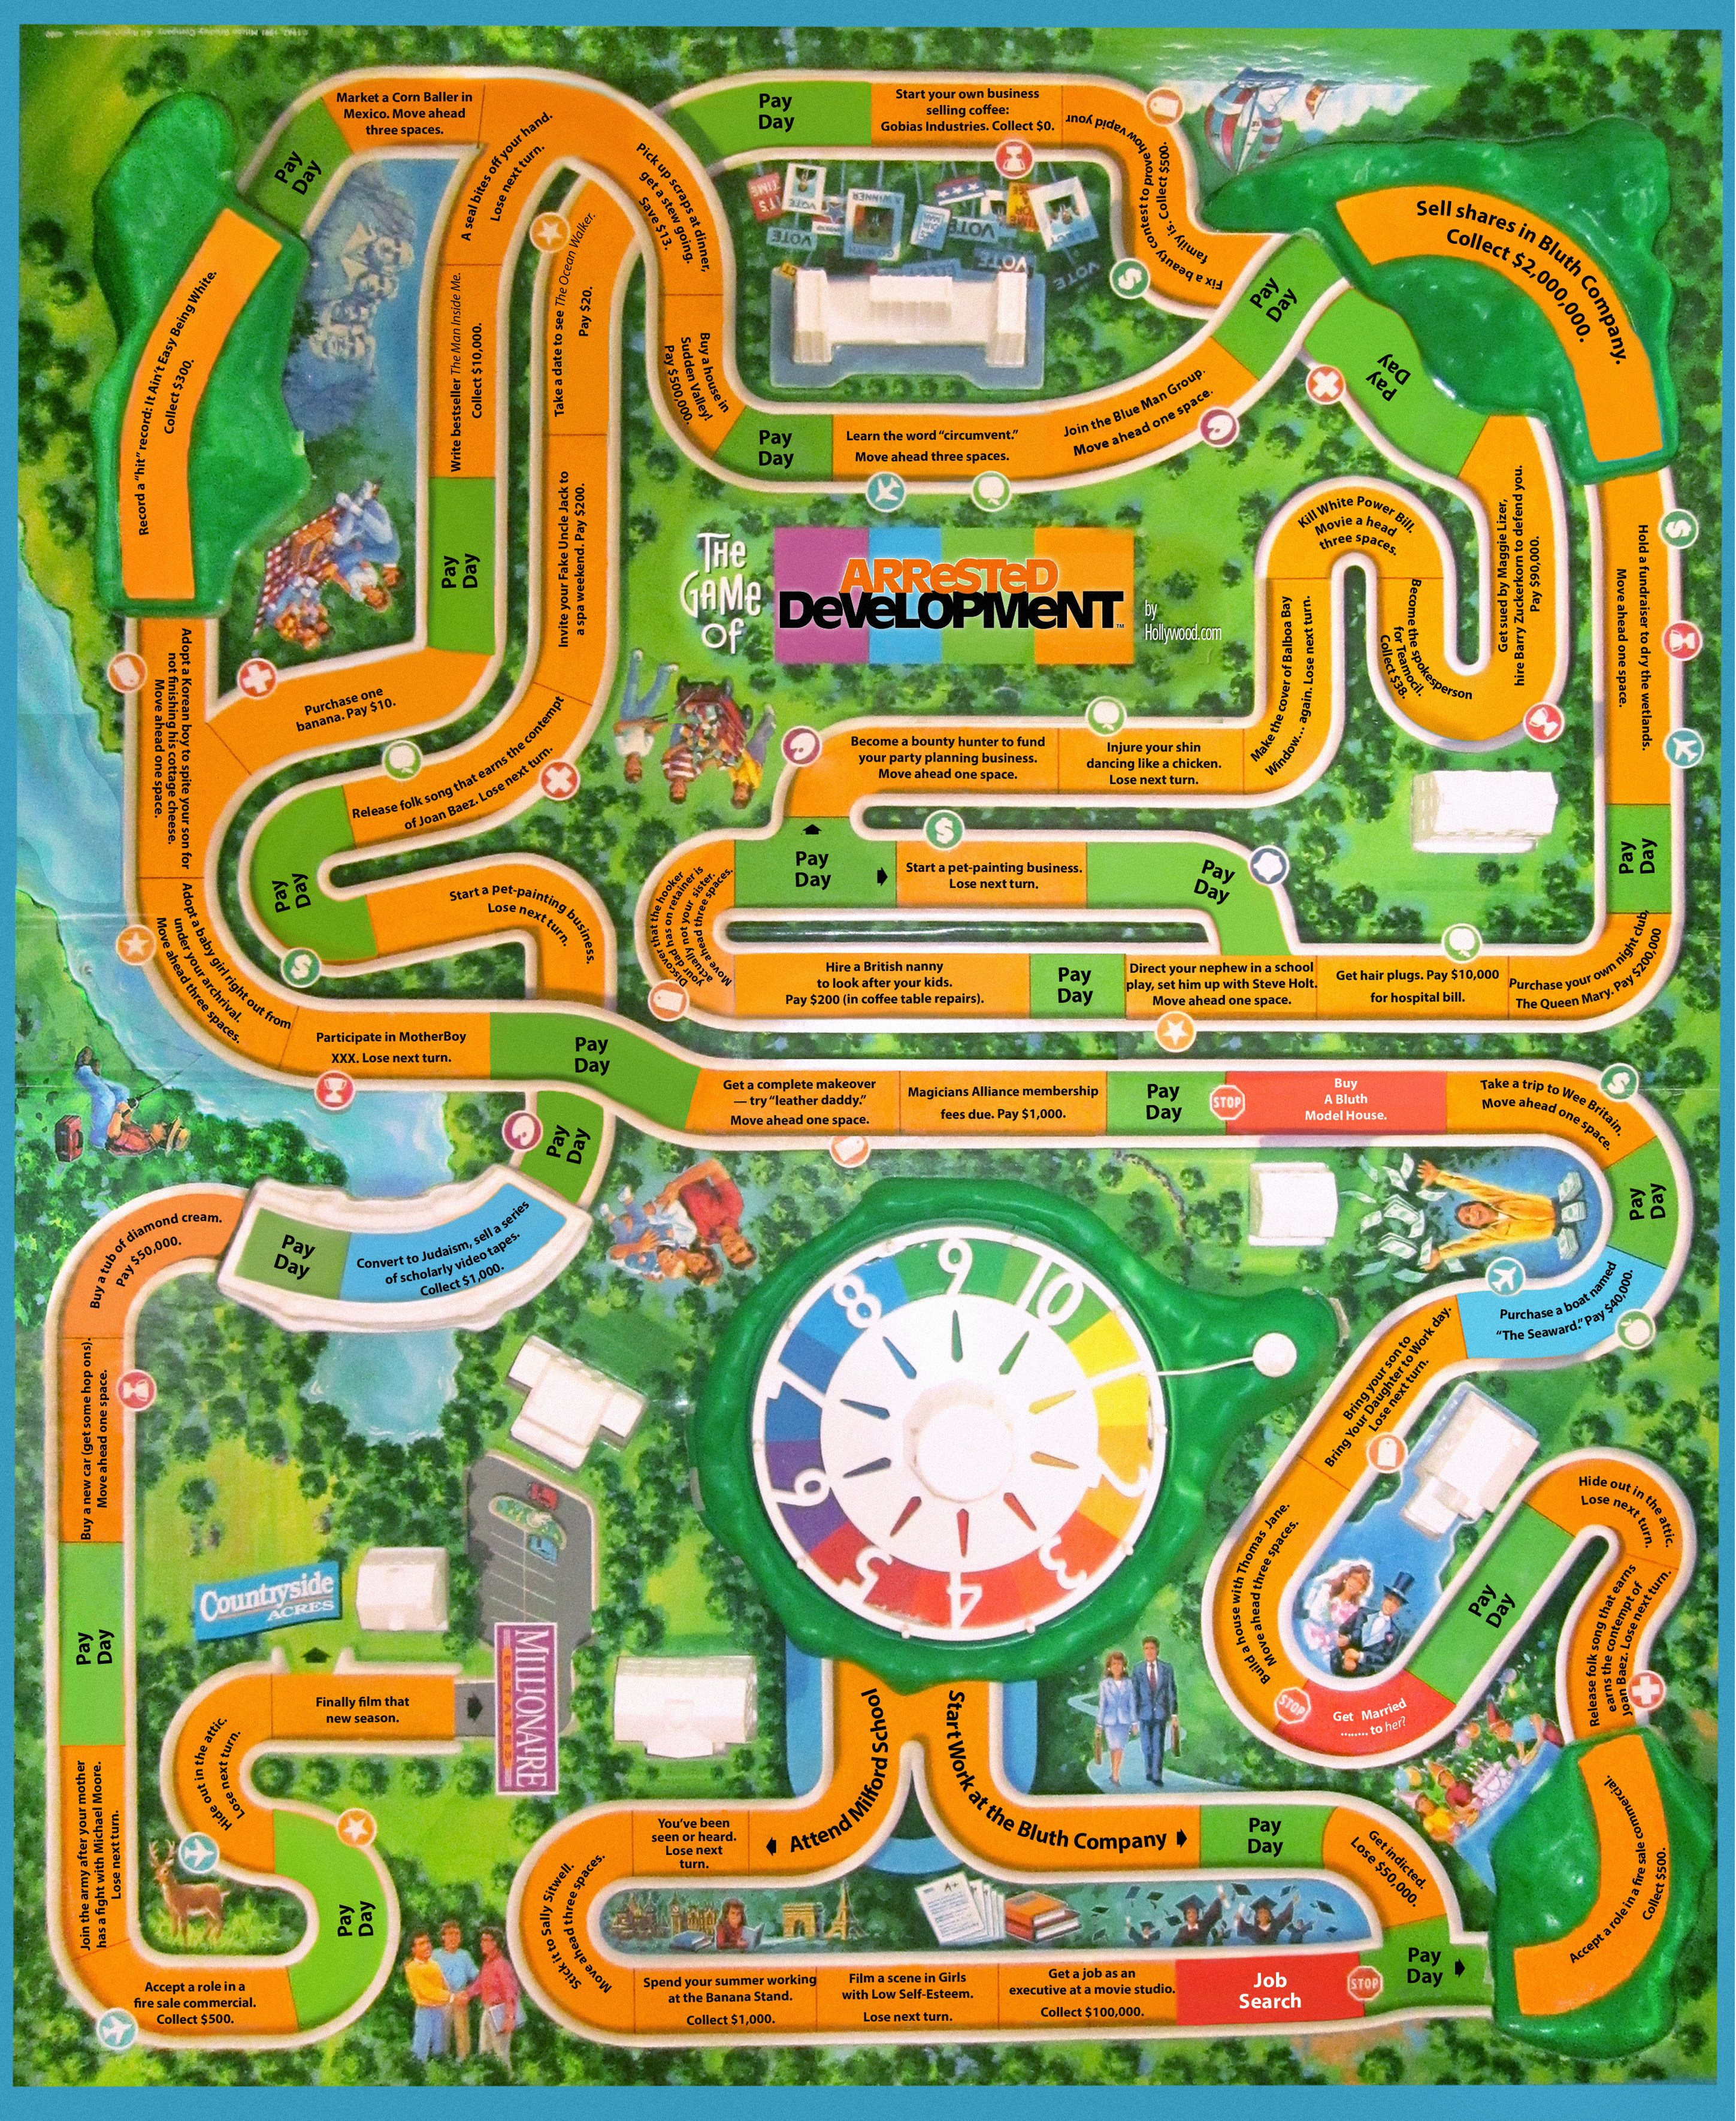 Race track printable board games - Explore Life Board Game Game Of Life And More